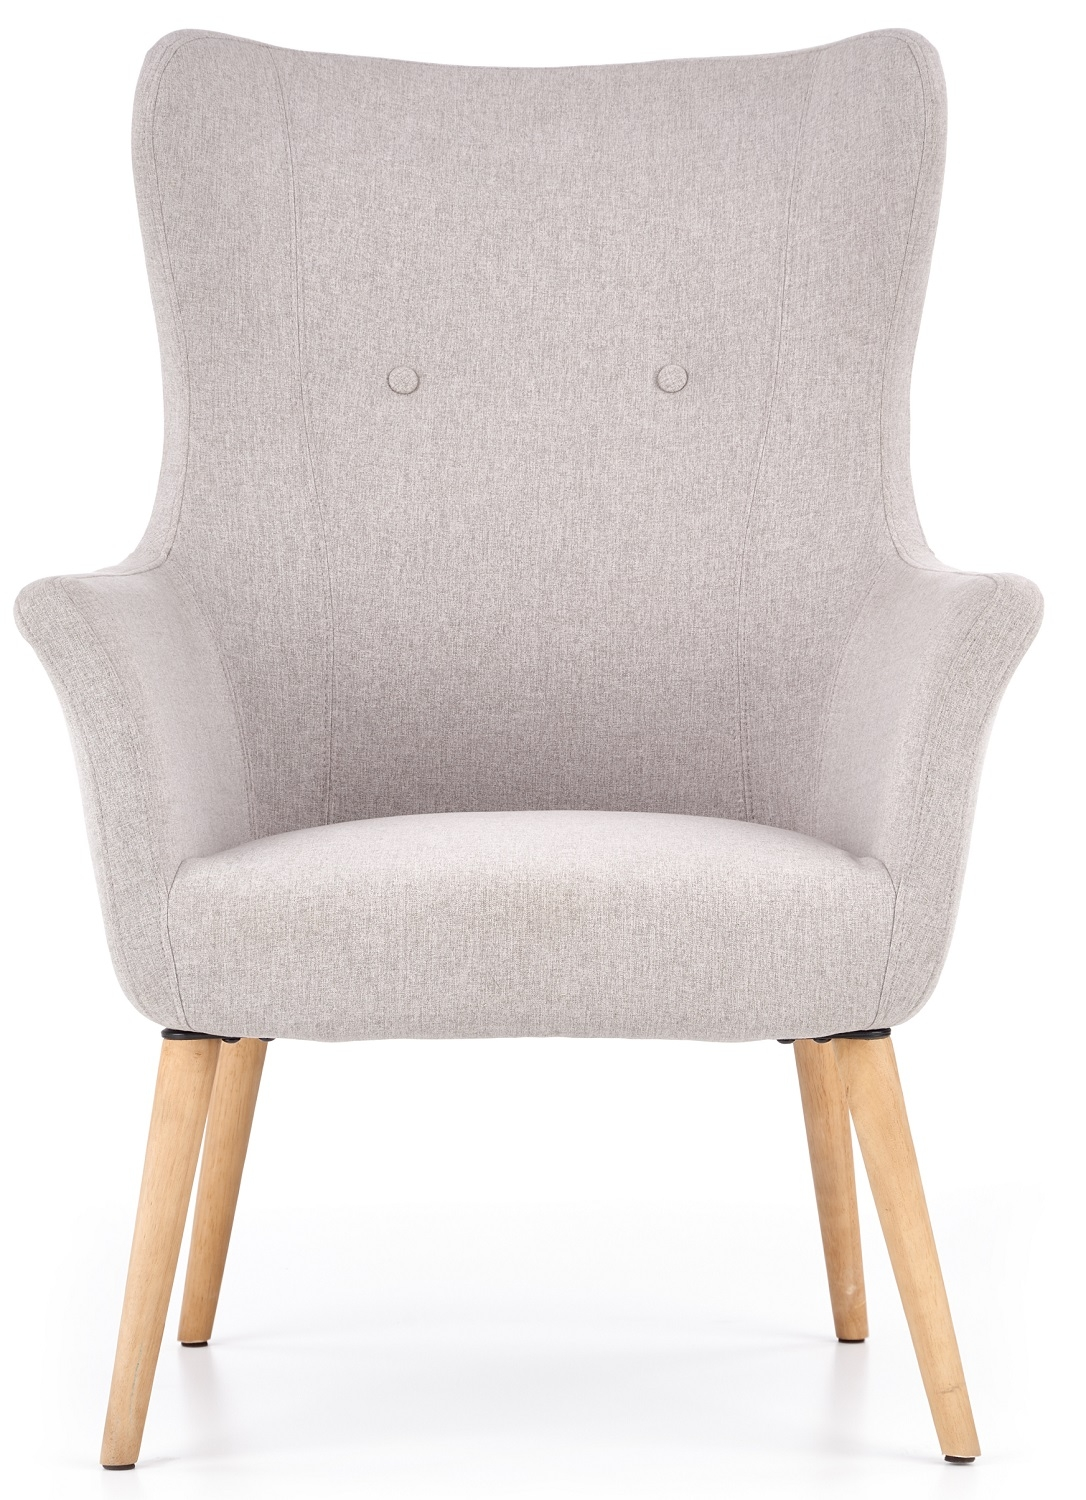 Fauteuil Cotto in lichtgrijs | Home Style